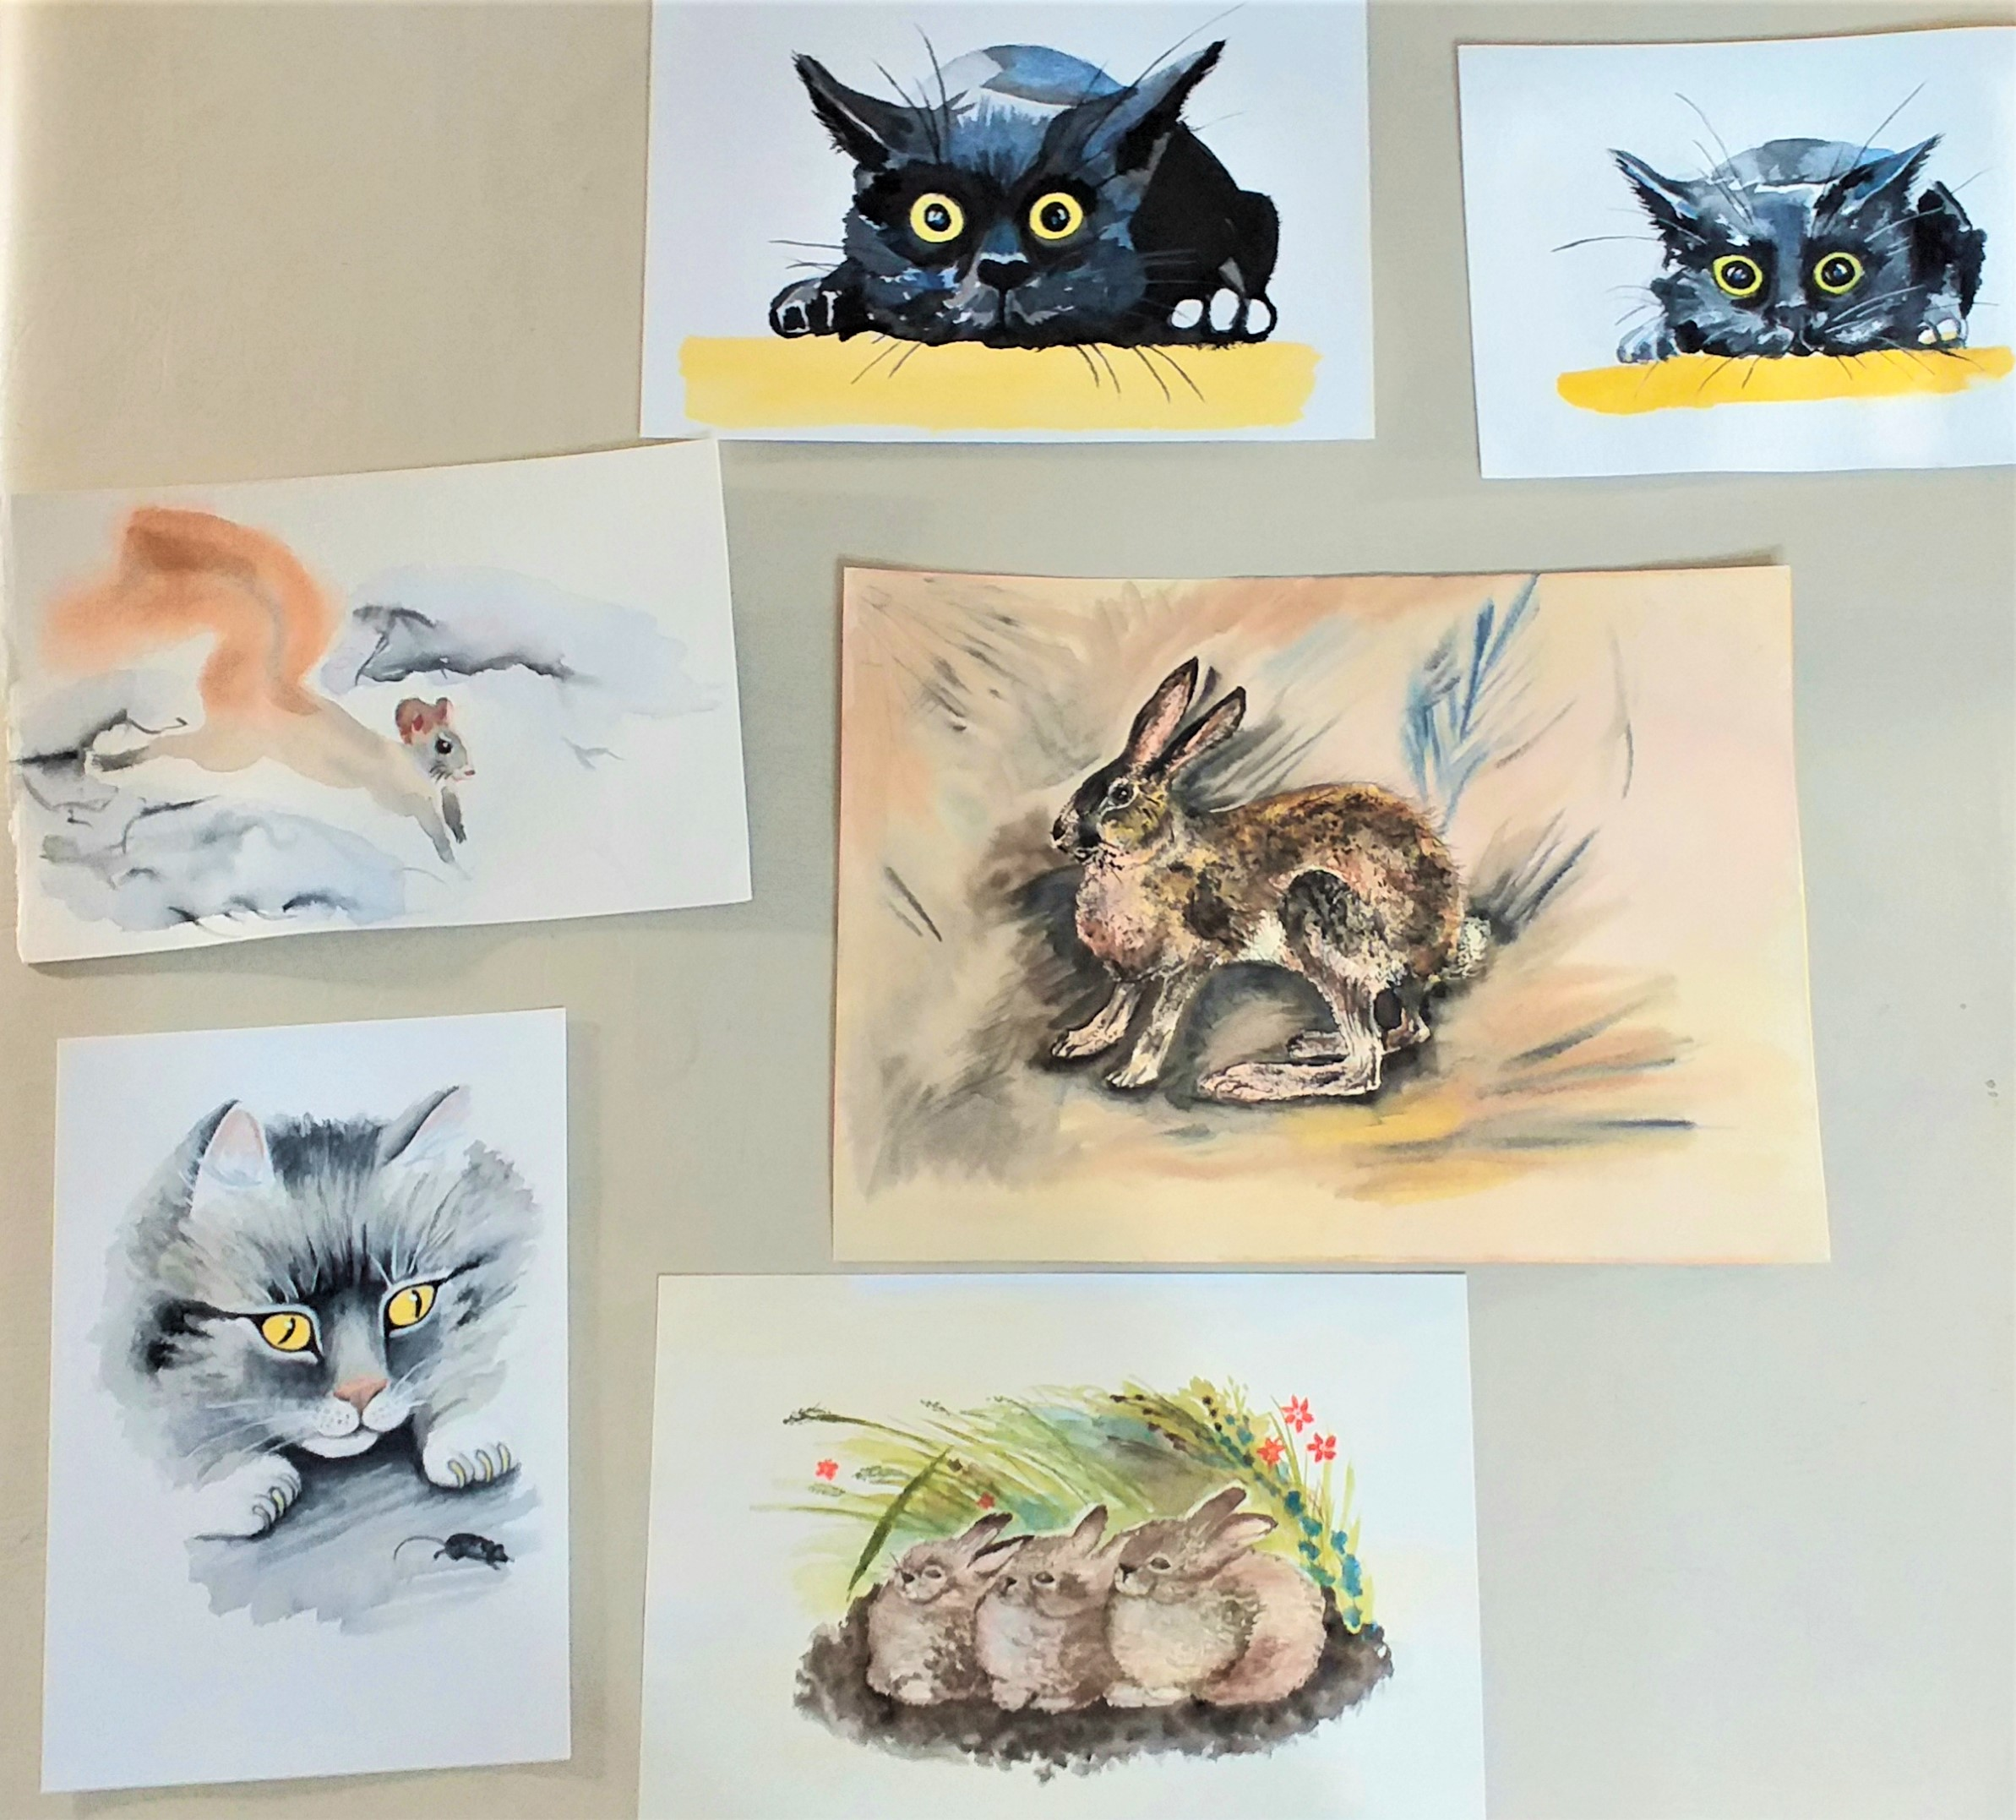 Students from Watercolour course for beginners in Worcestershire are showing amazing results